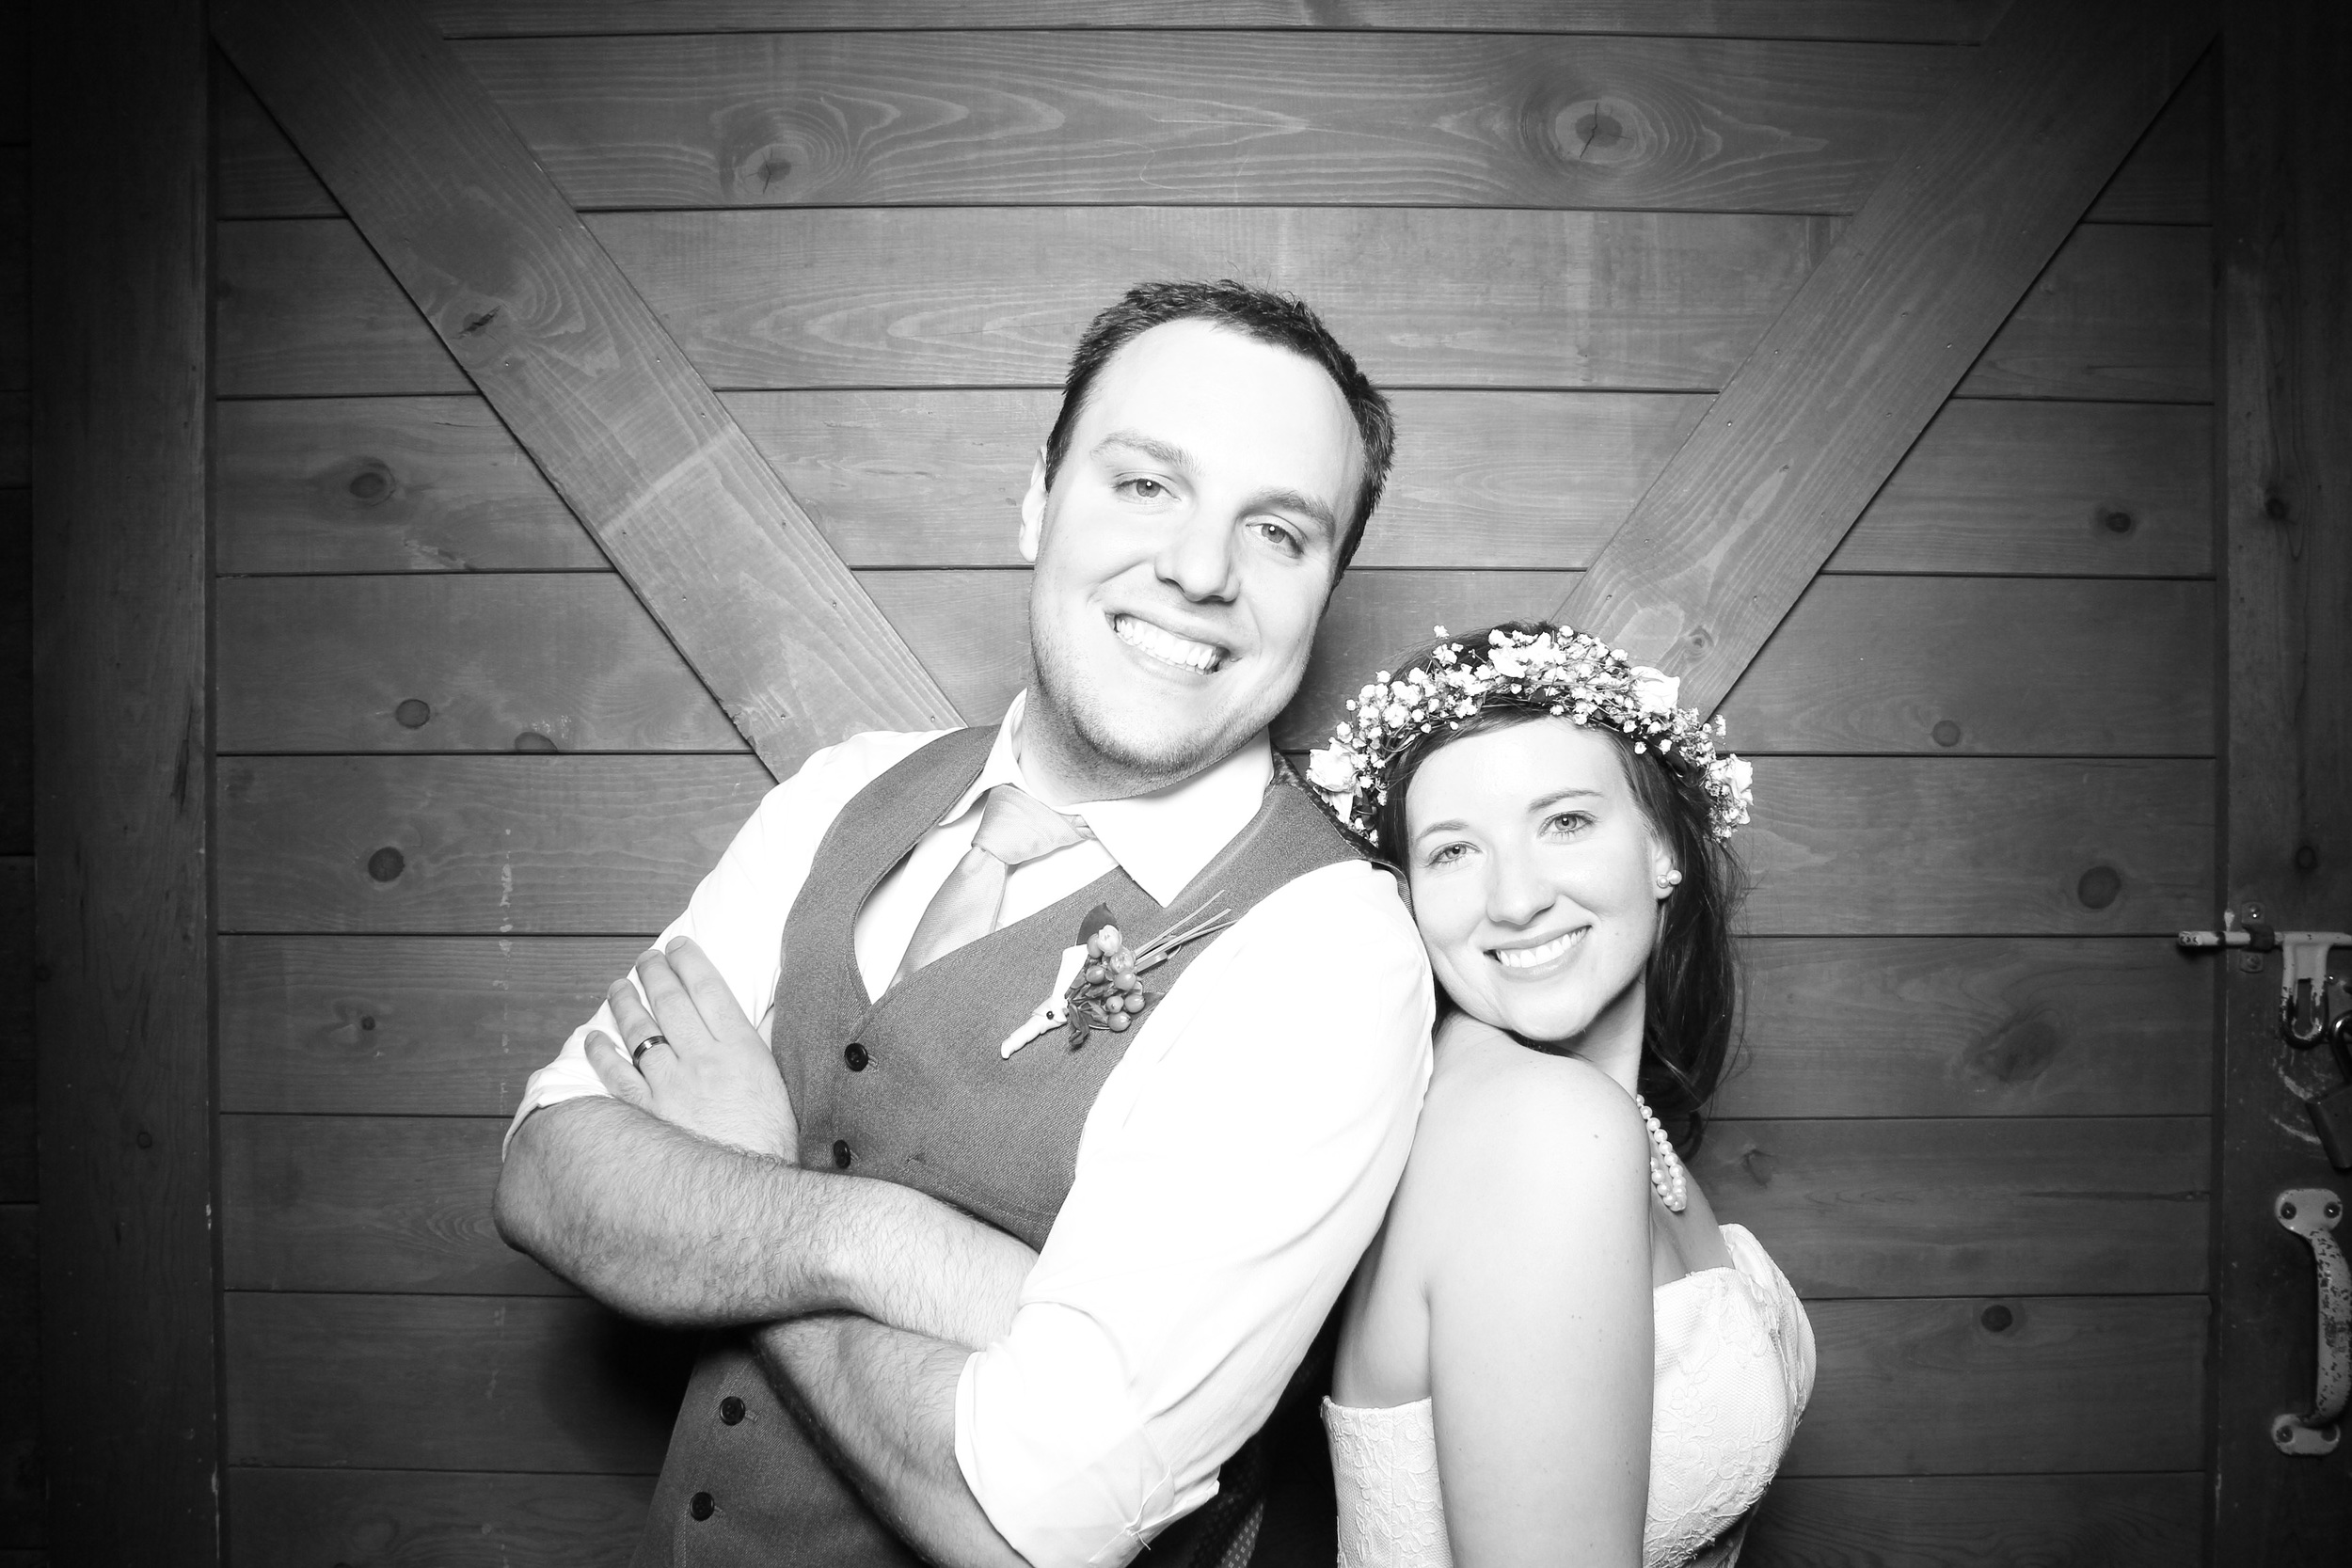 The bride and groom take a photo booth picture at Hoosier Grove Barn with the rustic barn door backdrop!